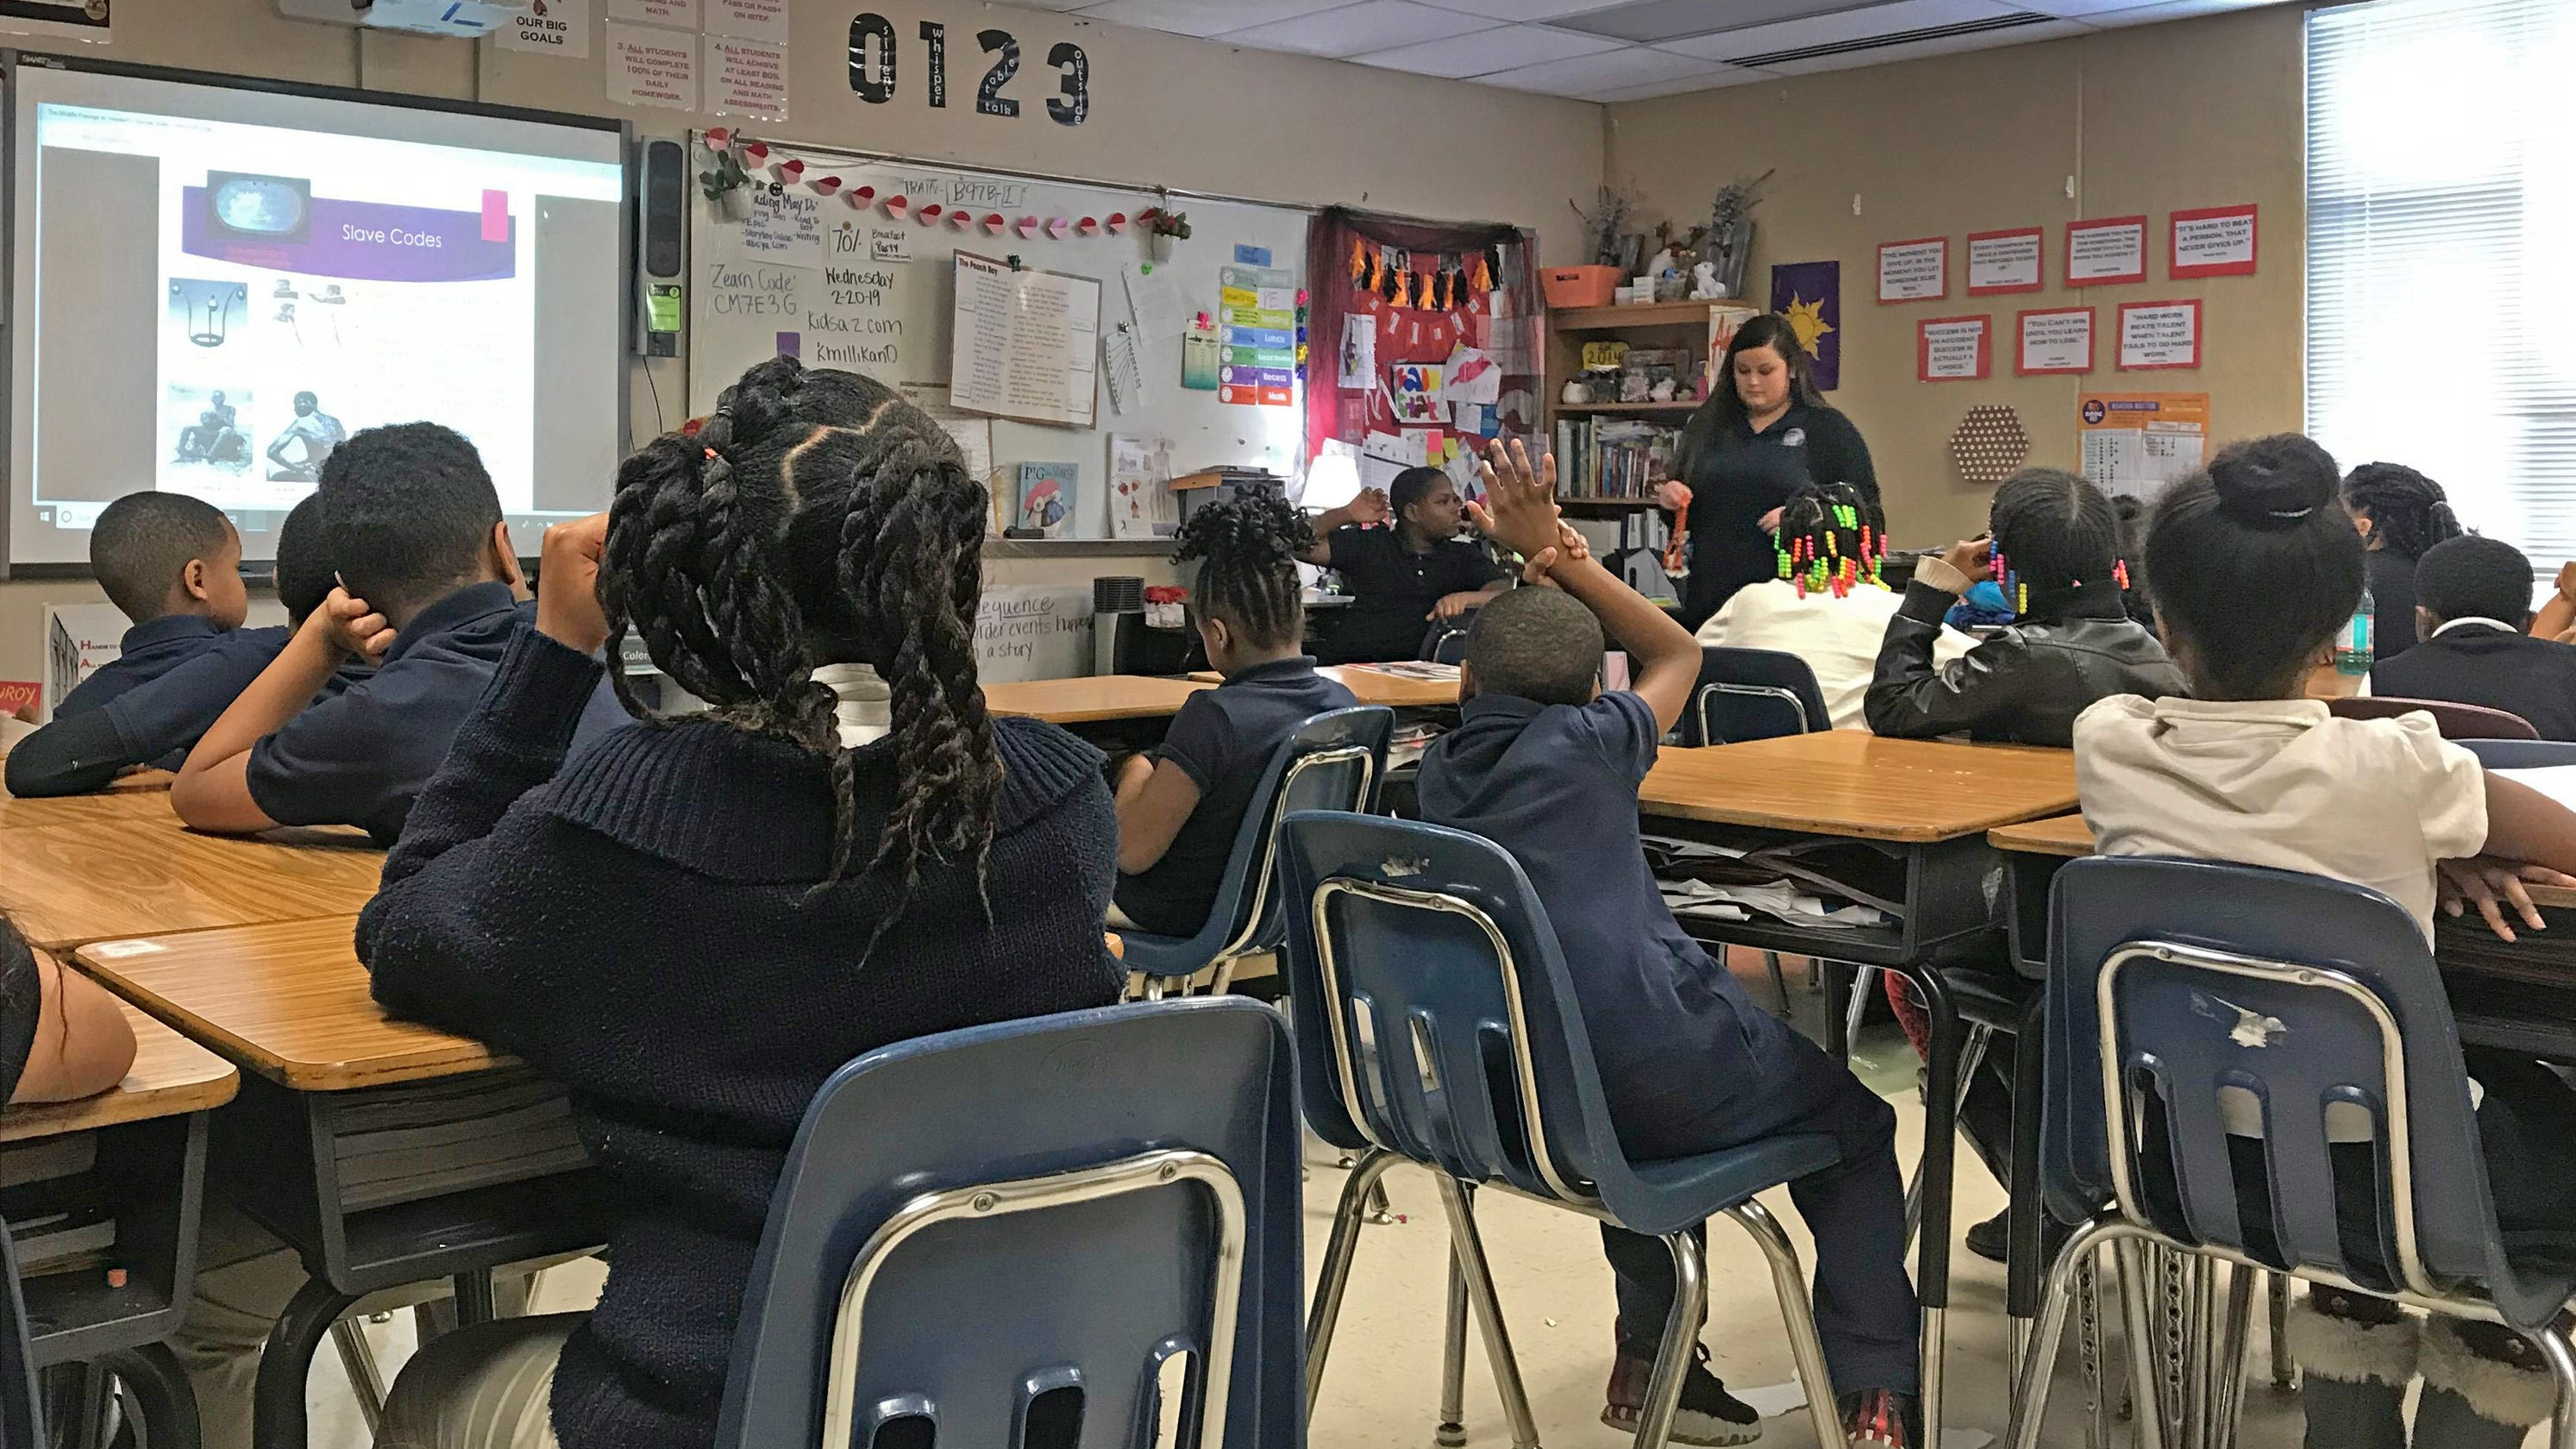 History of slavery is not taught very well in schools